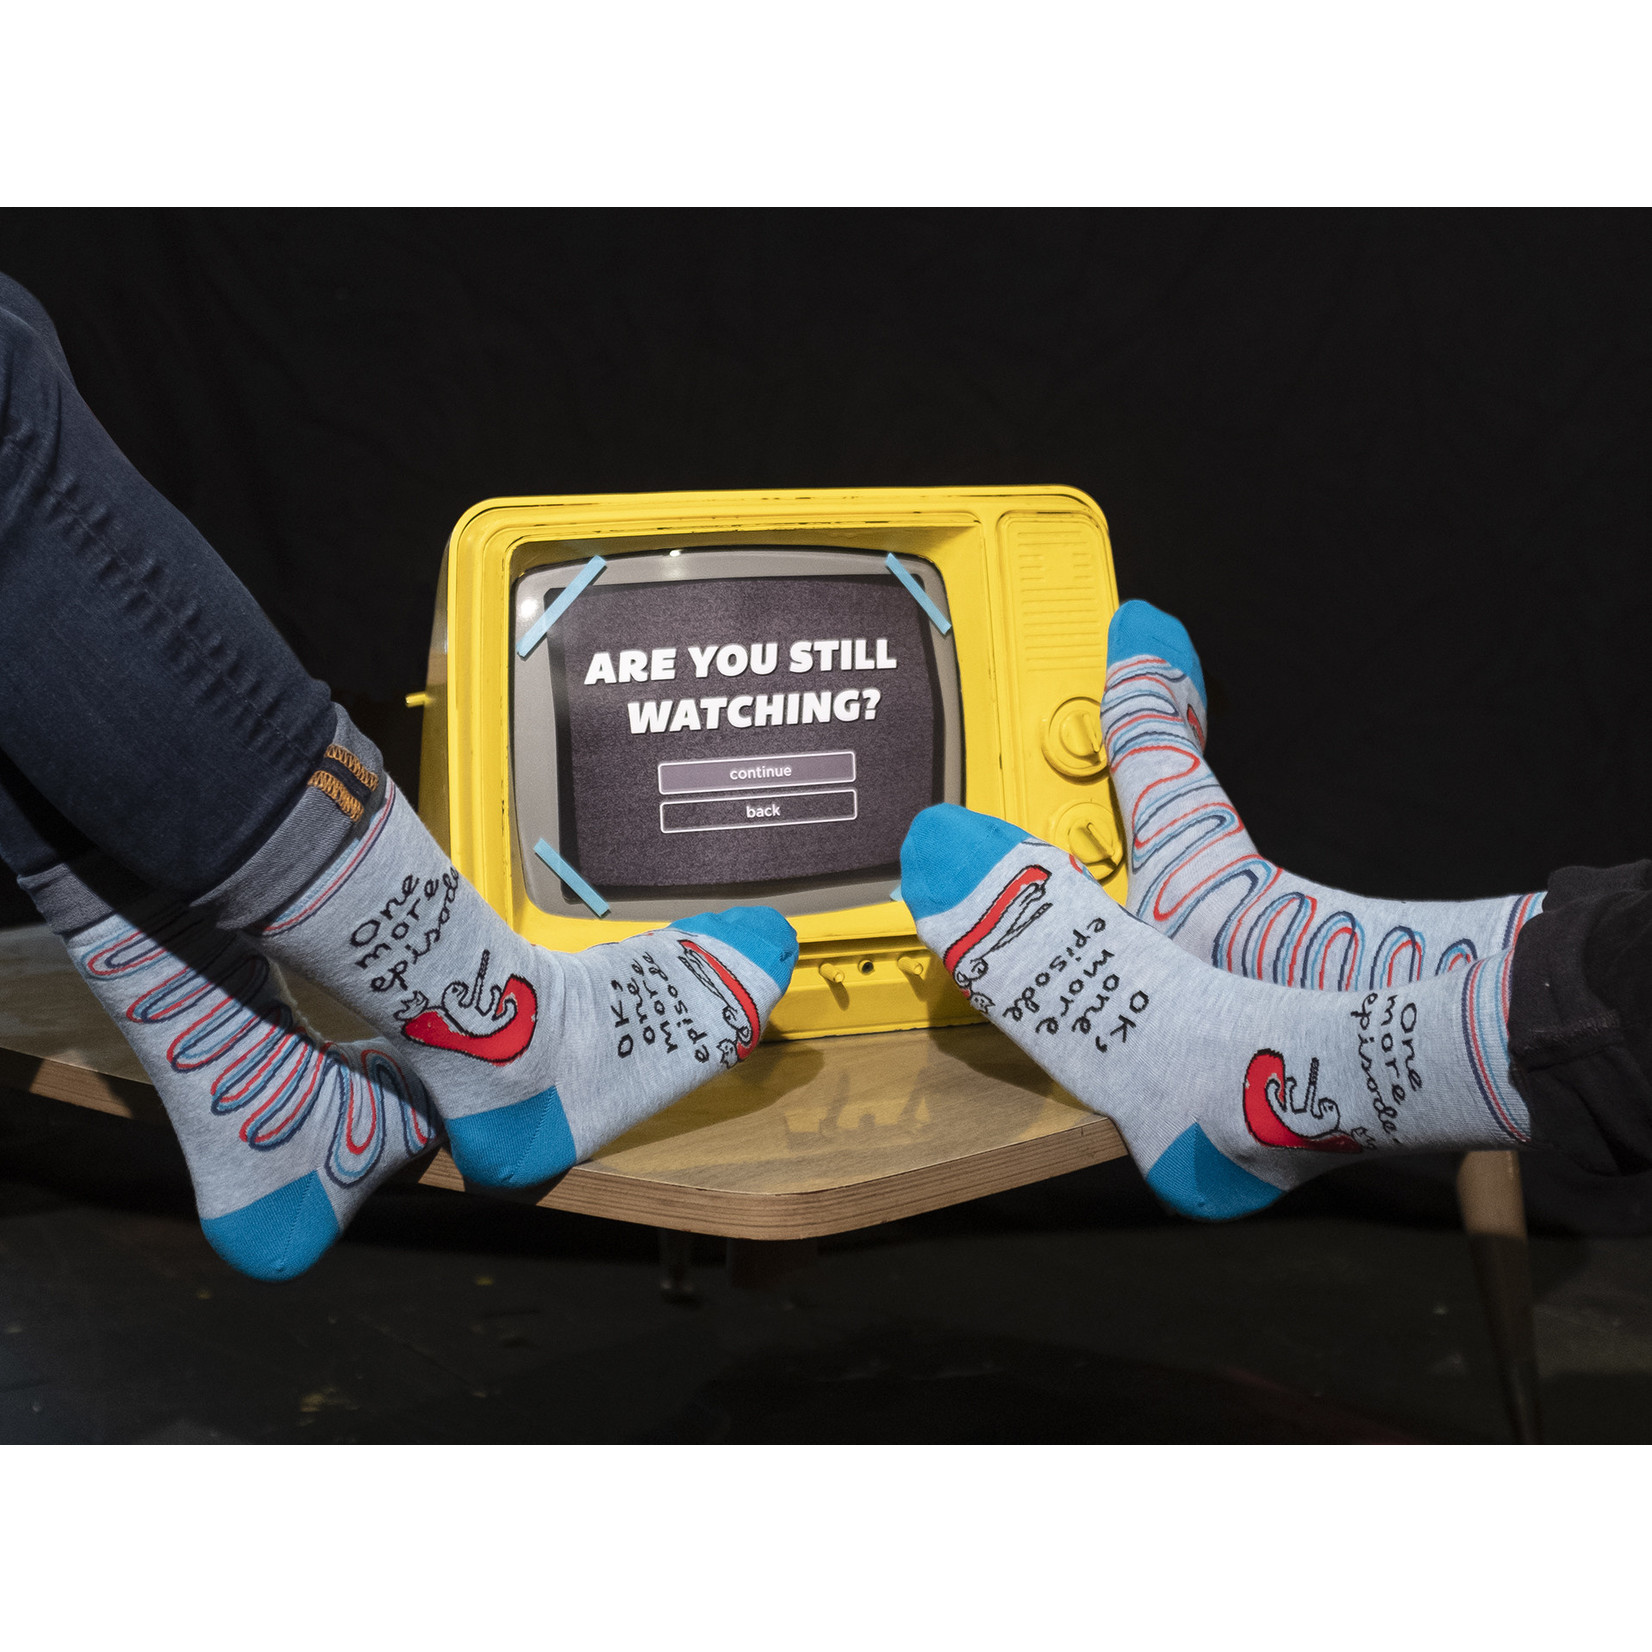 Blue Q Mens Crew Socks - One More Episode